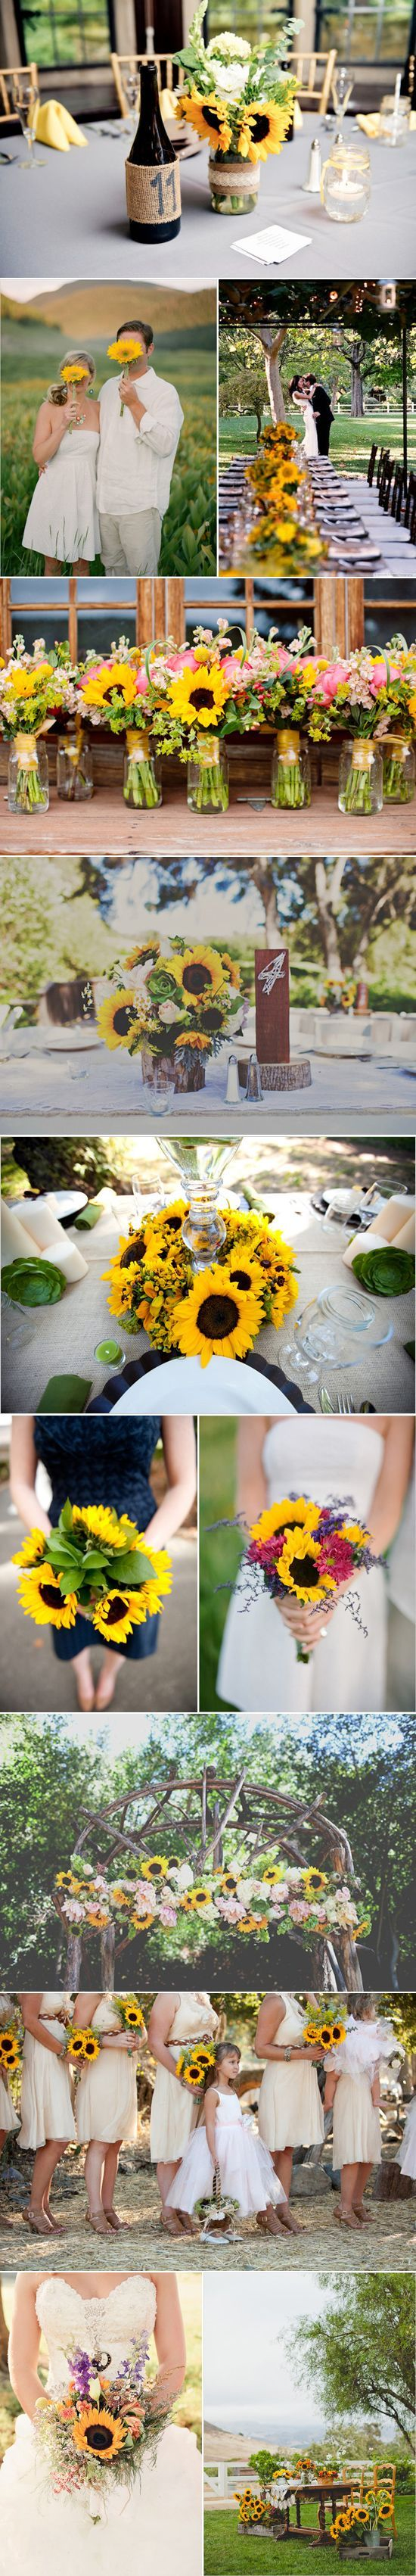 Love! Add blue flowers with the sunflowers.